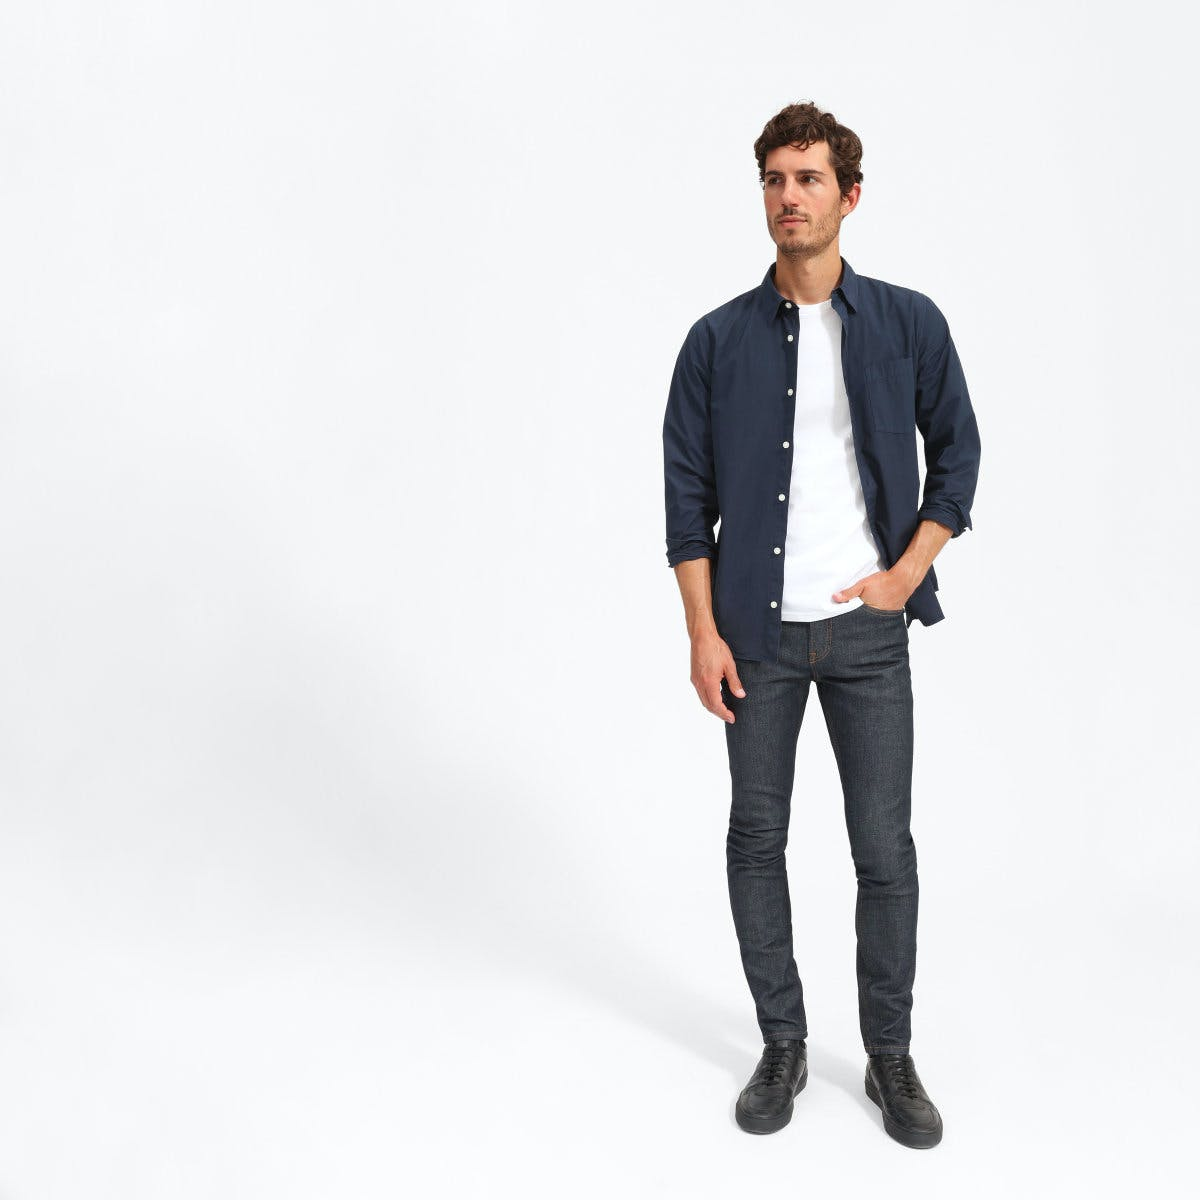 everlane, everlane jeans, everlane denim, japanese denim, skinny jeans, slim jeans, raw jeans, tapered jeans, denimblog, denim blog